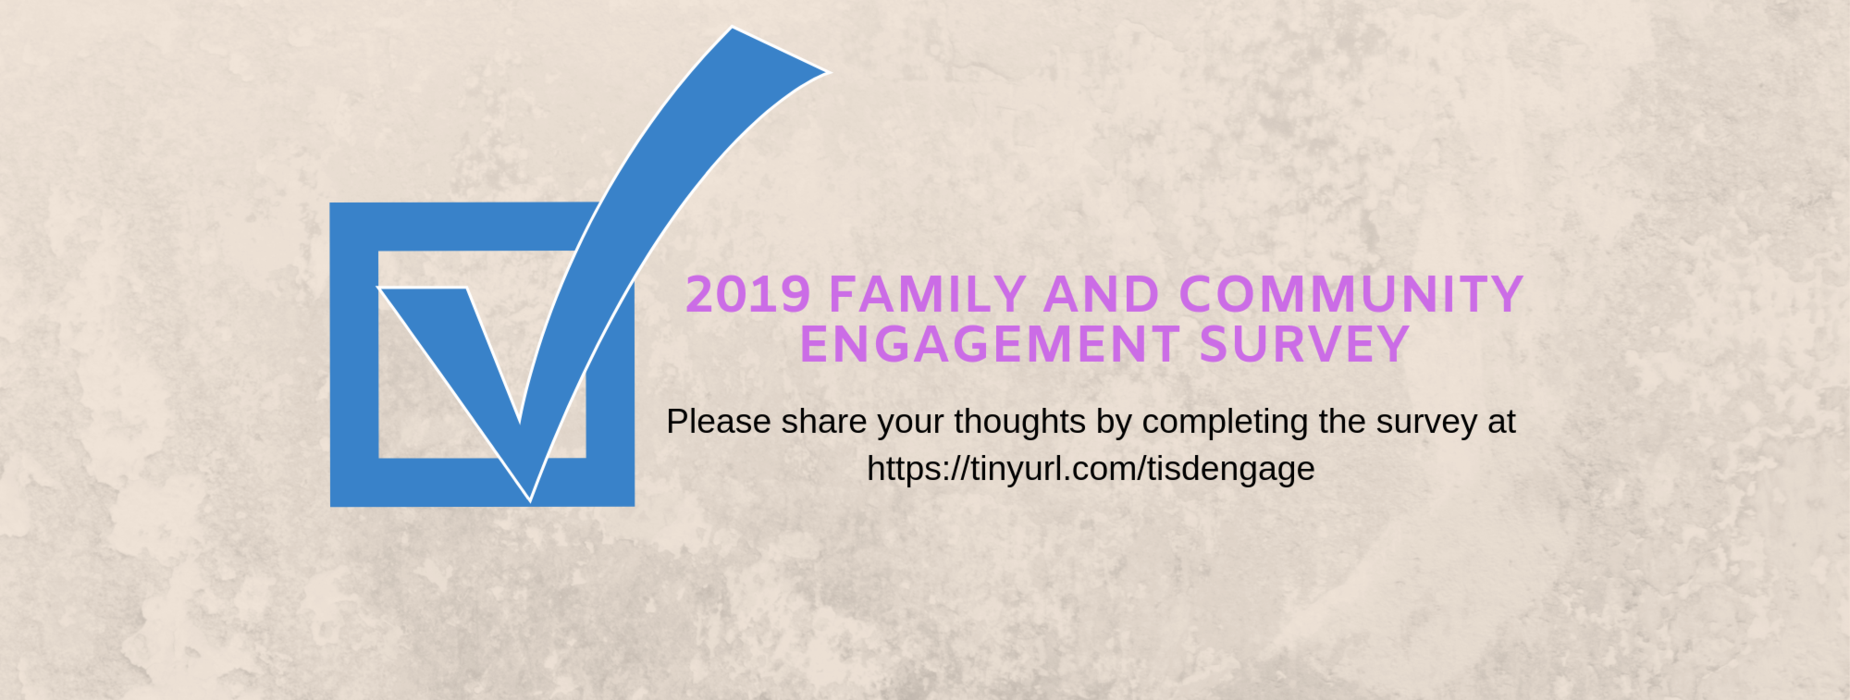 Family and Community Engagement Survey